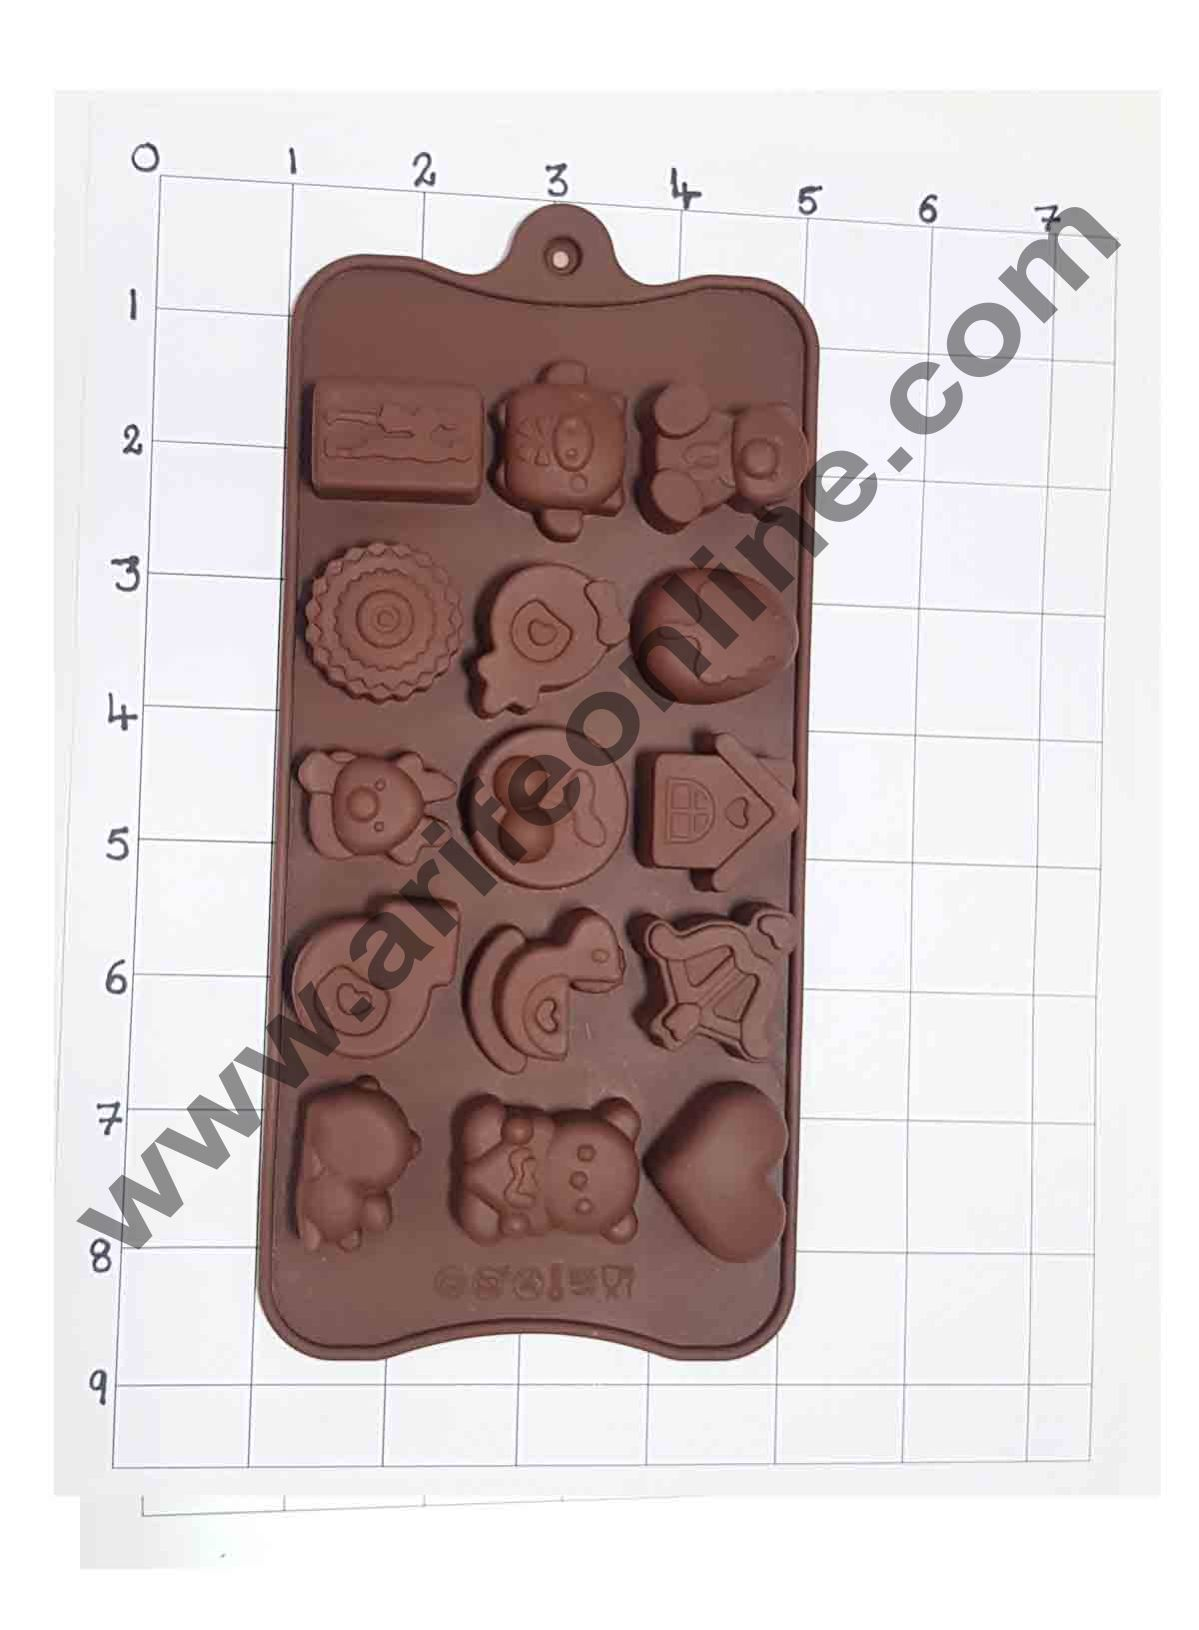 Cake Decor Silicon 15 Cavity New Teddy,Couples and Heart Design Brown Chocolate Mould, Ice Mould, Chocolate Decorating Mould